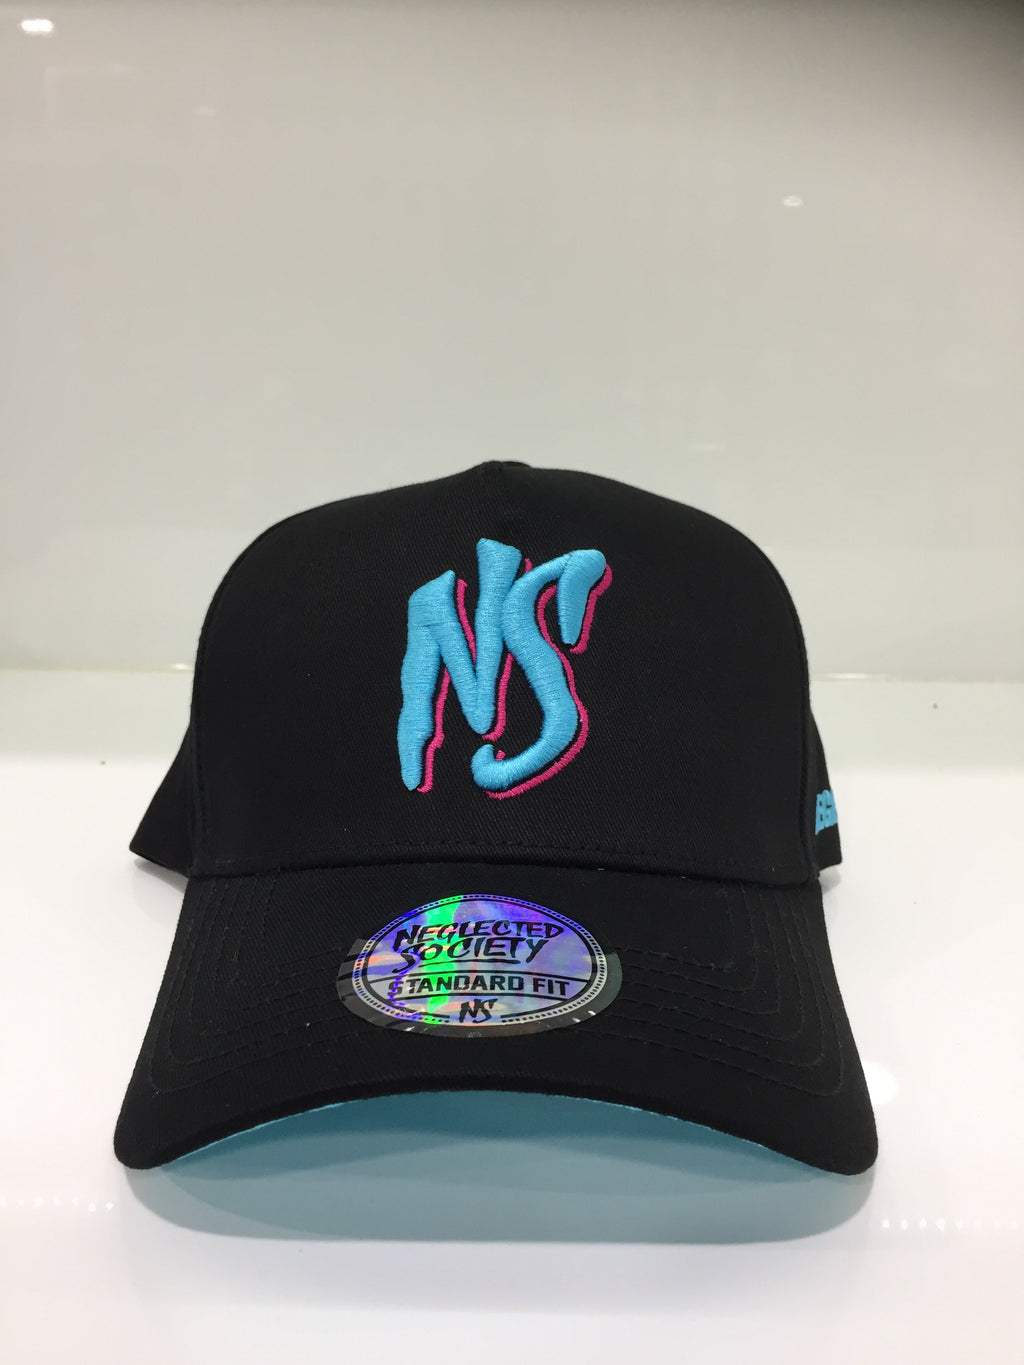 NS Standard fit Miami Aframe Snapback Black